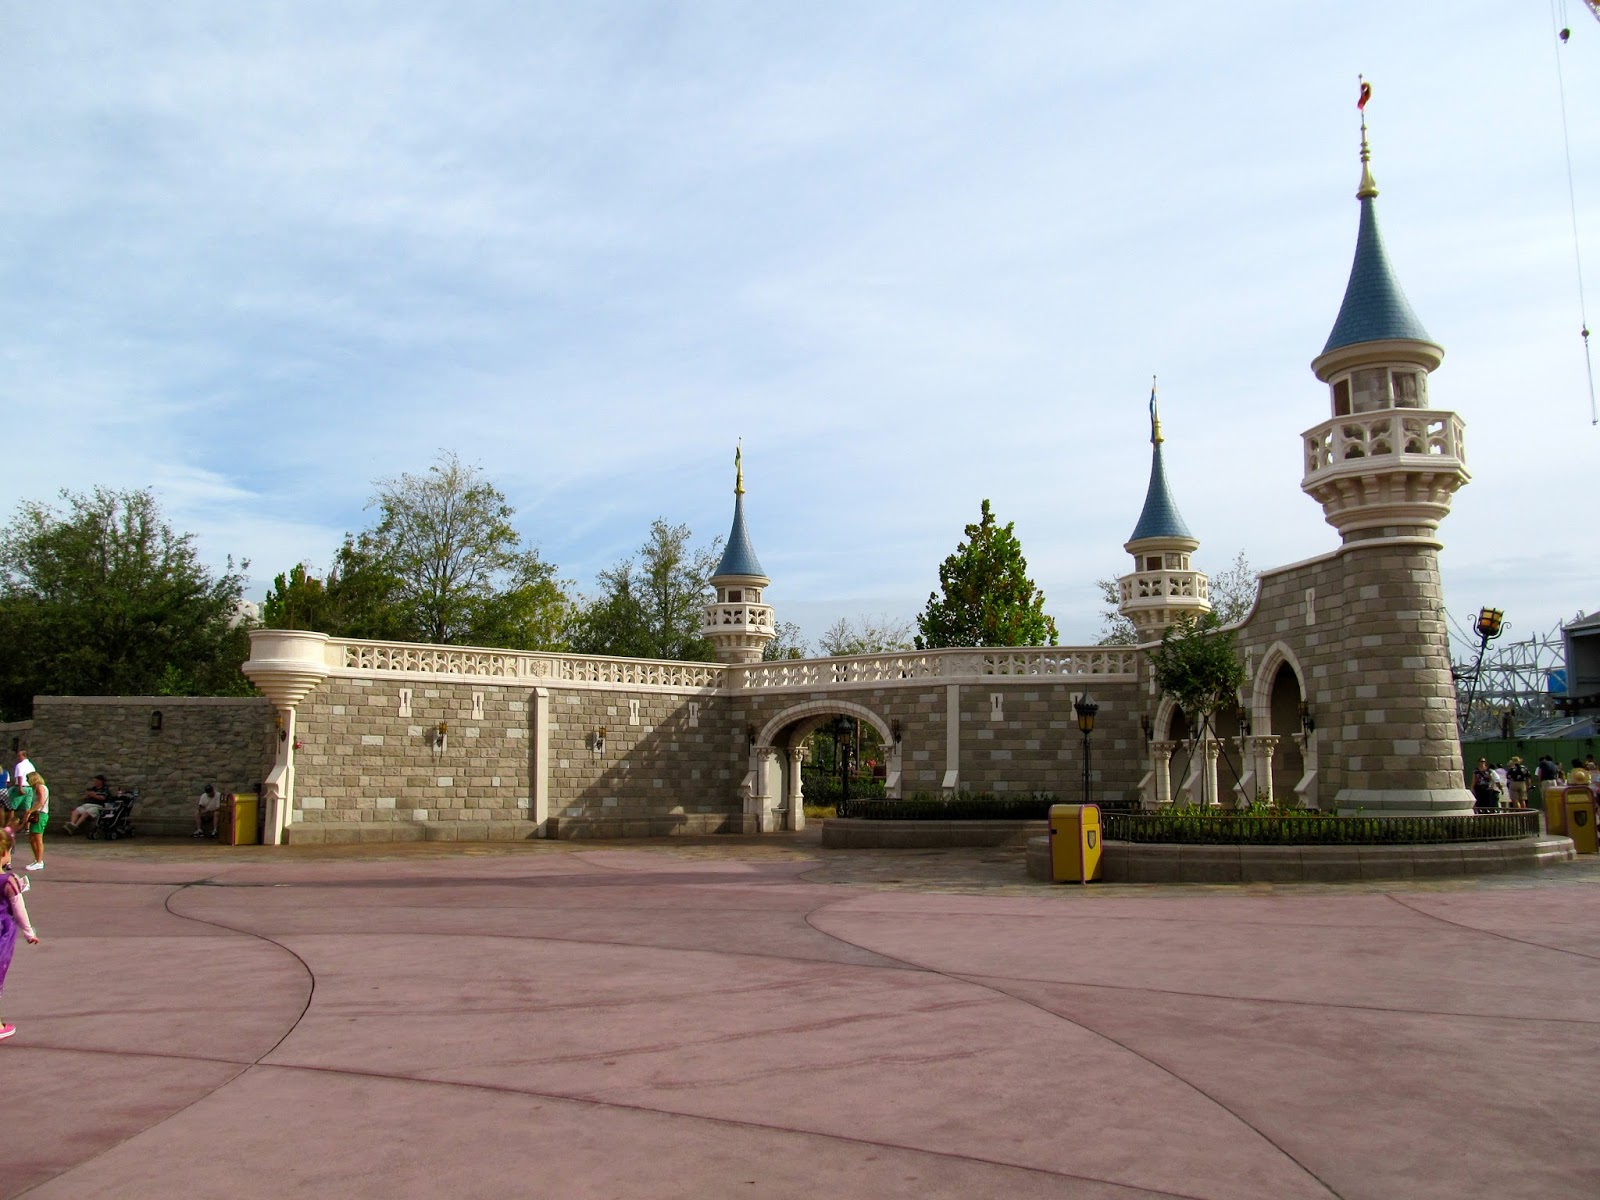 The Entrance to Fantasy Land - www.ouroutdoortravels.blogspot.com